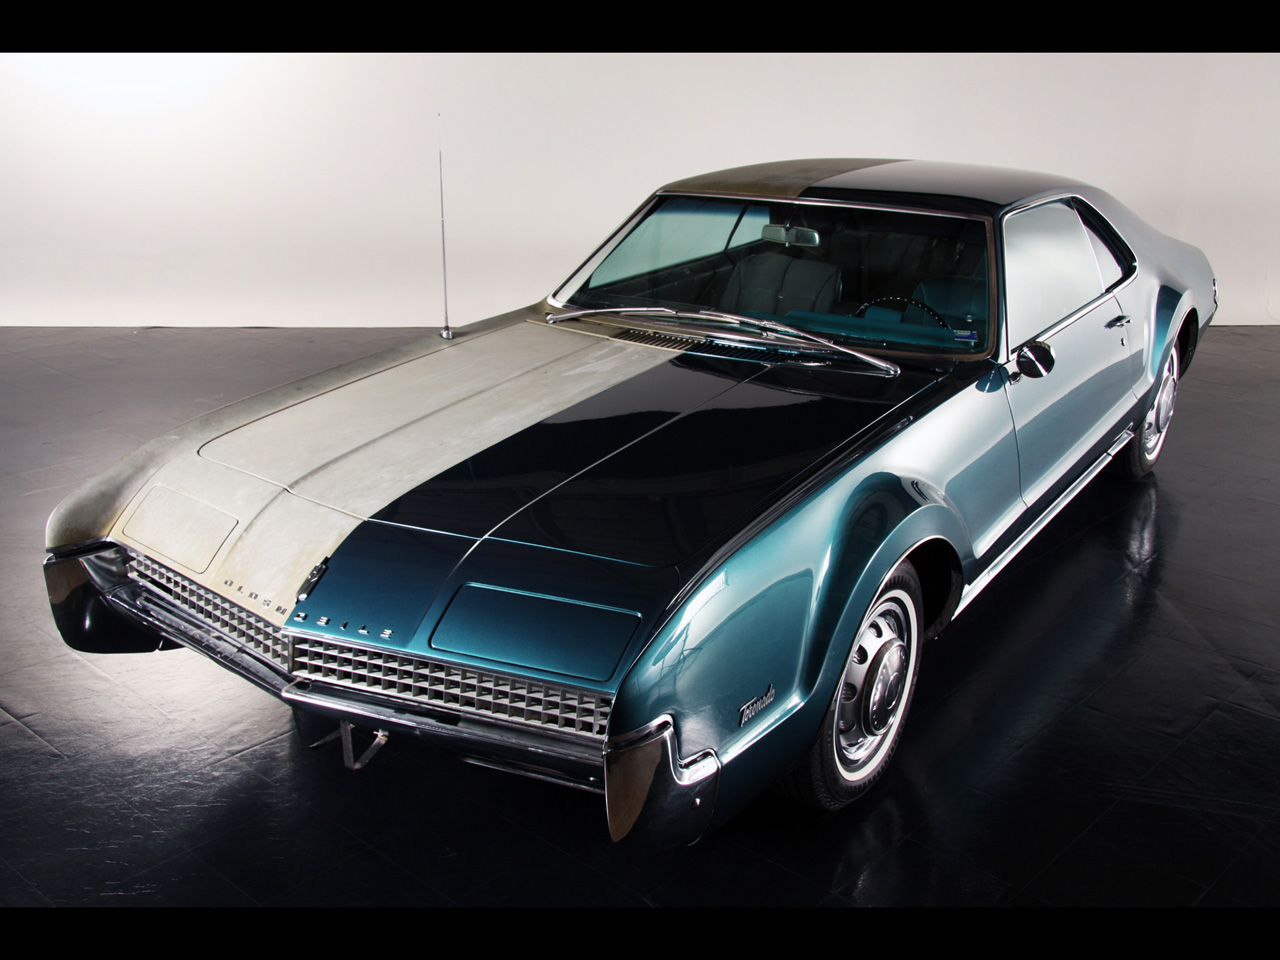 1280x960 - Oldsmobile Wallpapers 19